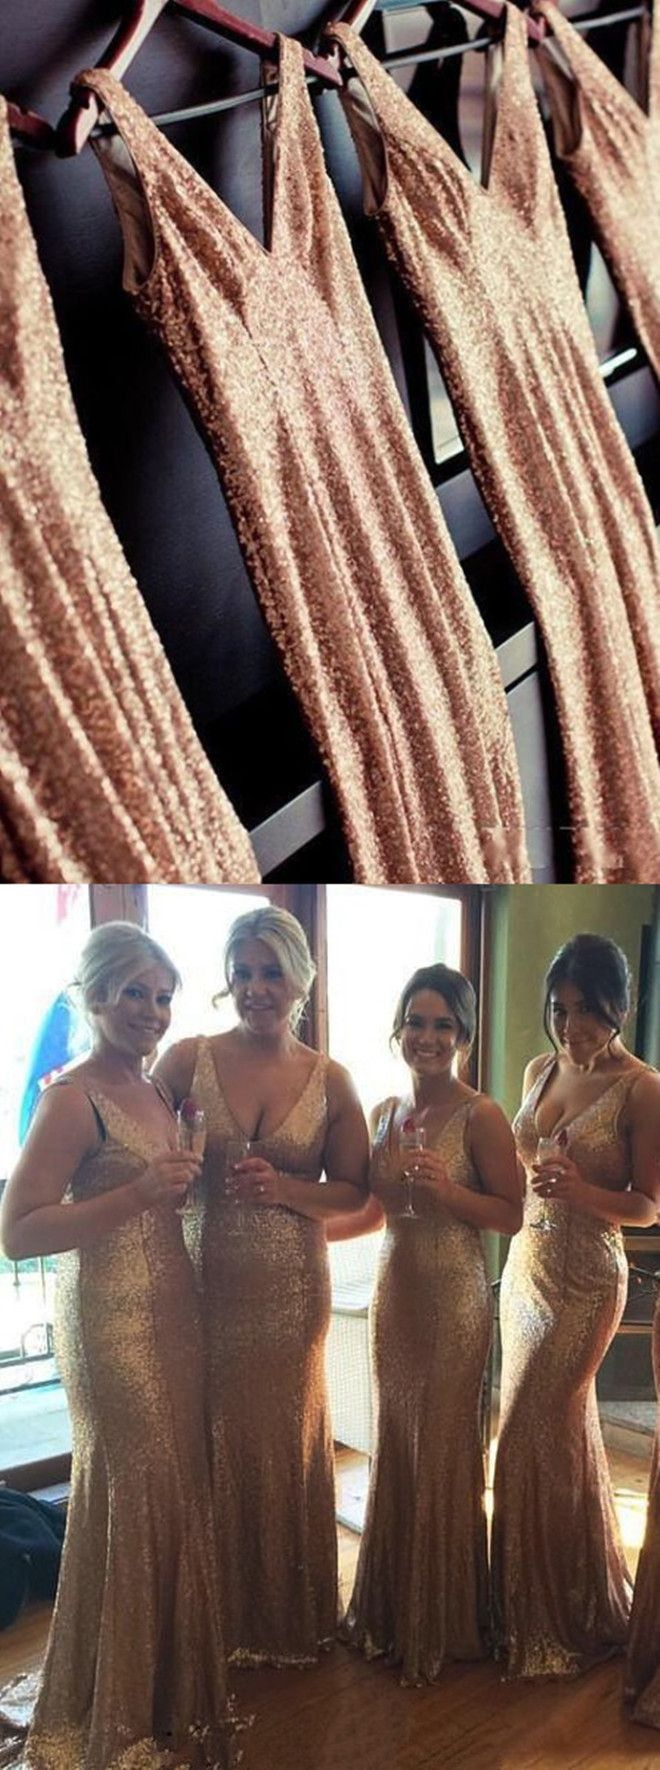 long bridesmaid dresses,sequins bridesmaid dresses,gold bridesmaid dresses,cheap bridesmaid dresses @simpledress2480